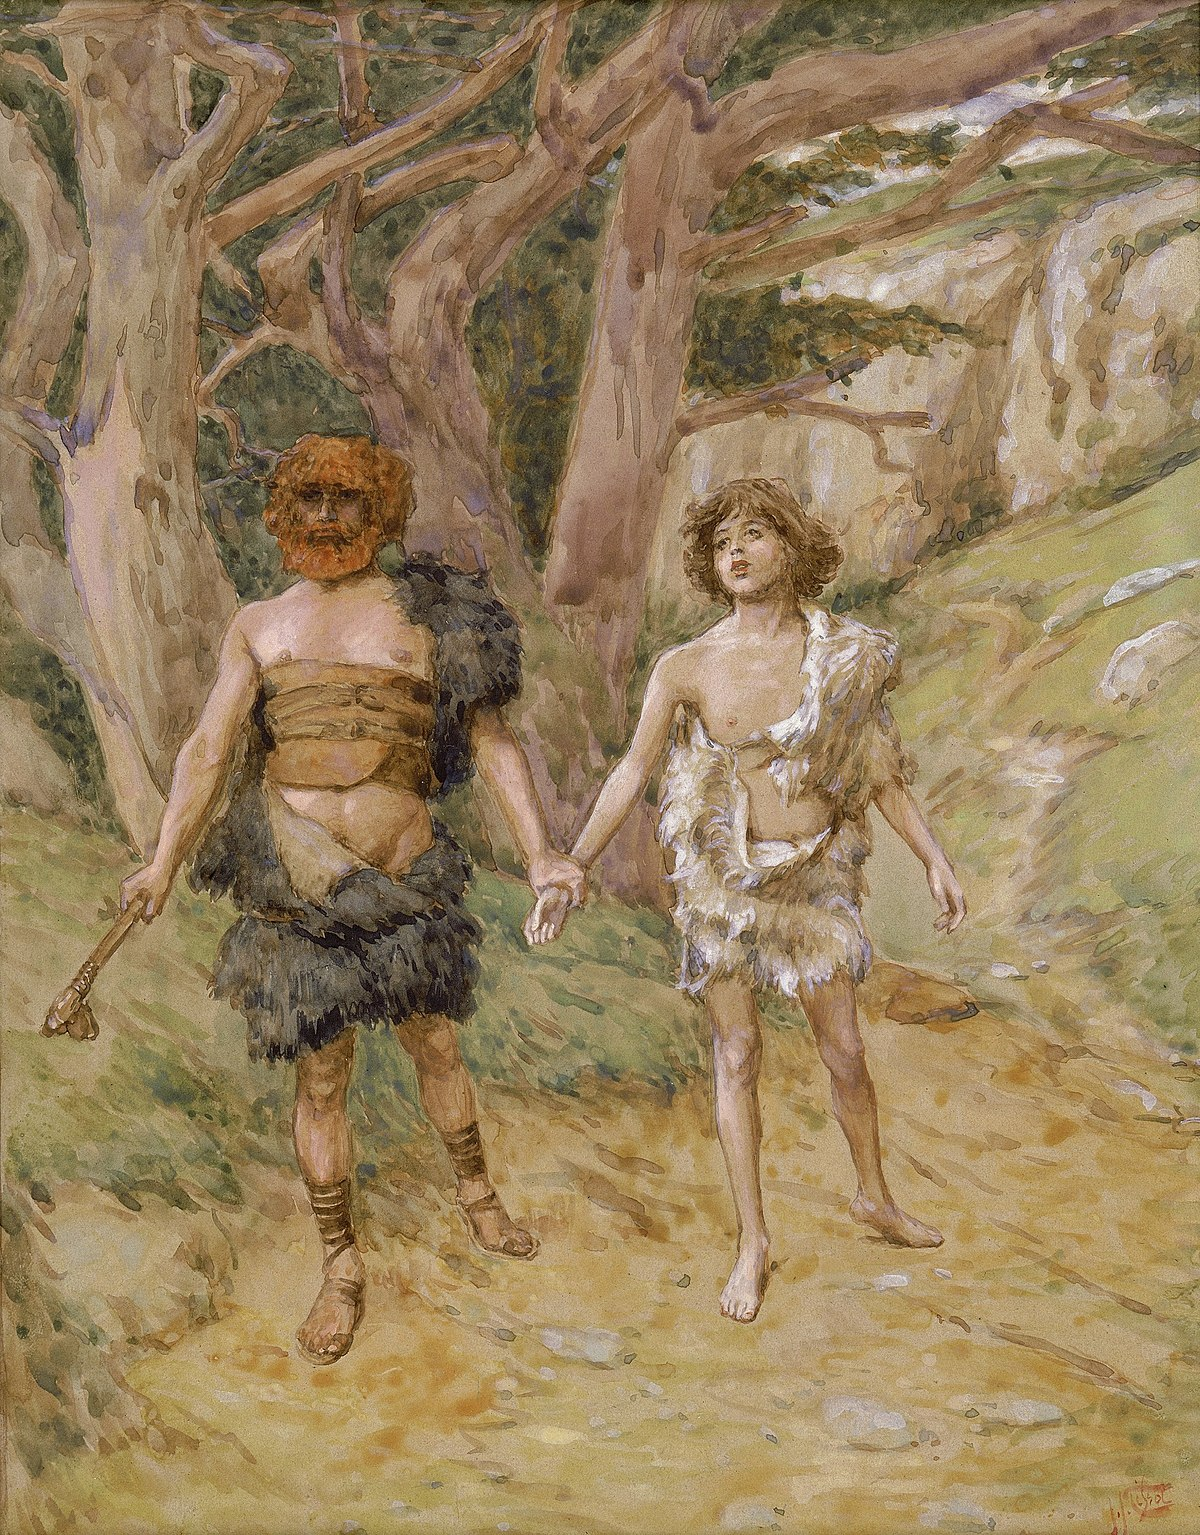 Cain and abel manual on pdf